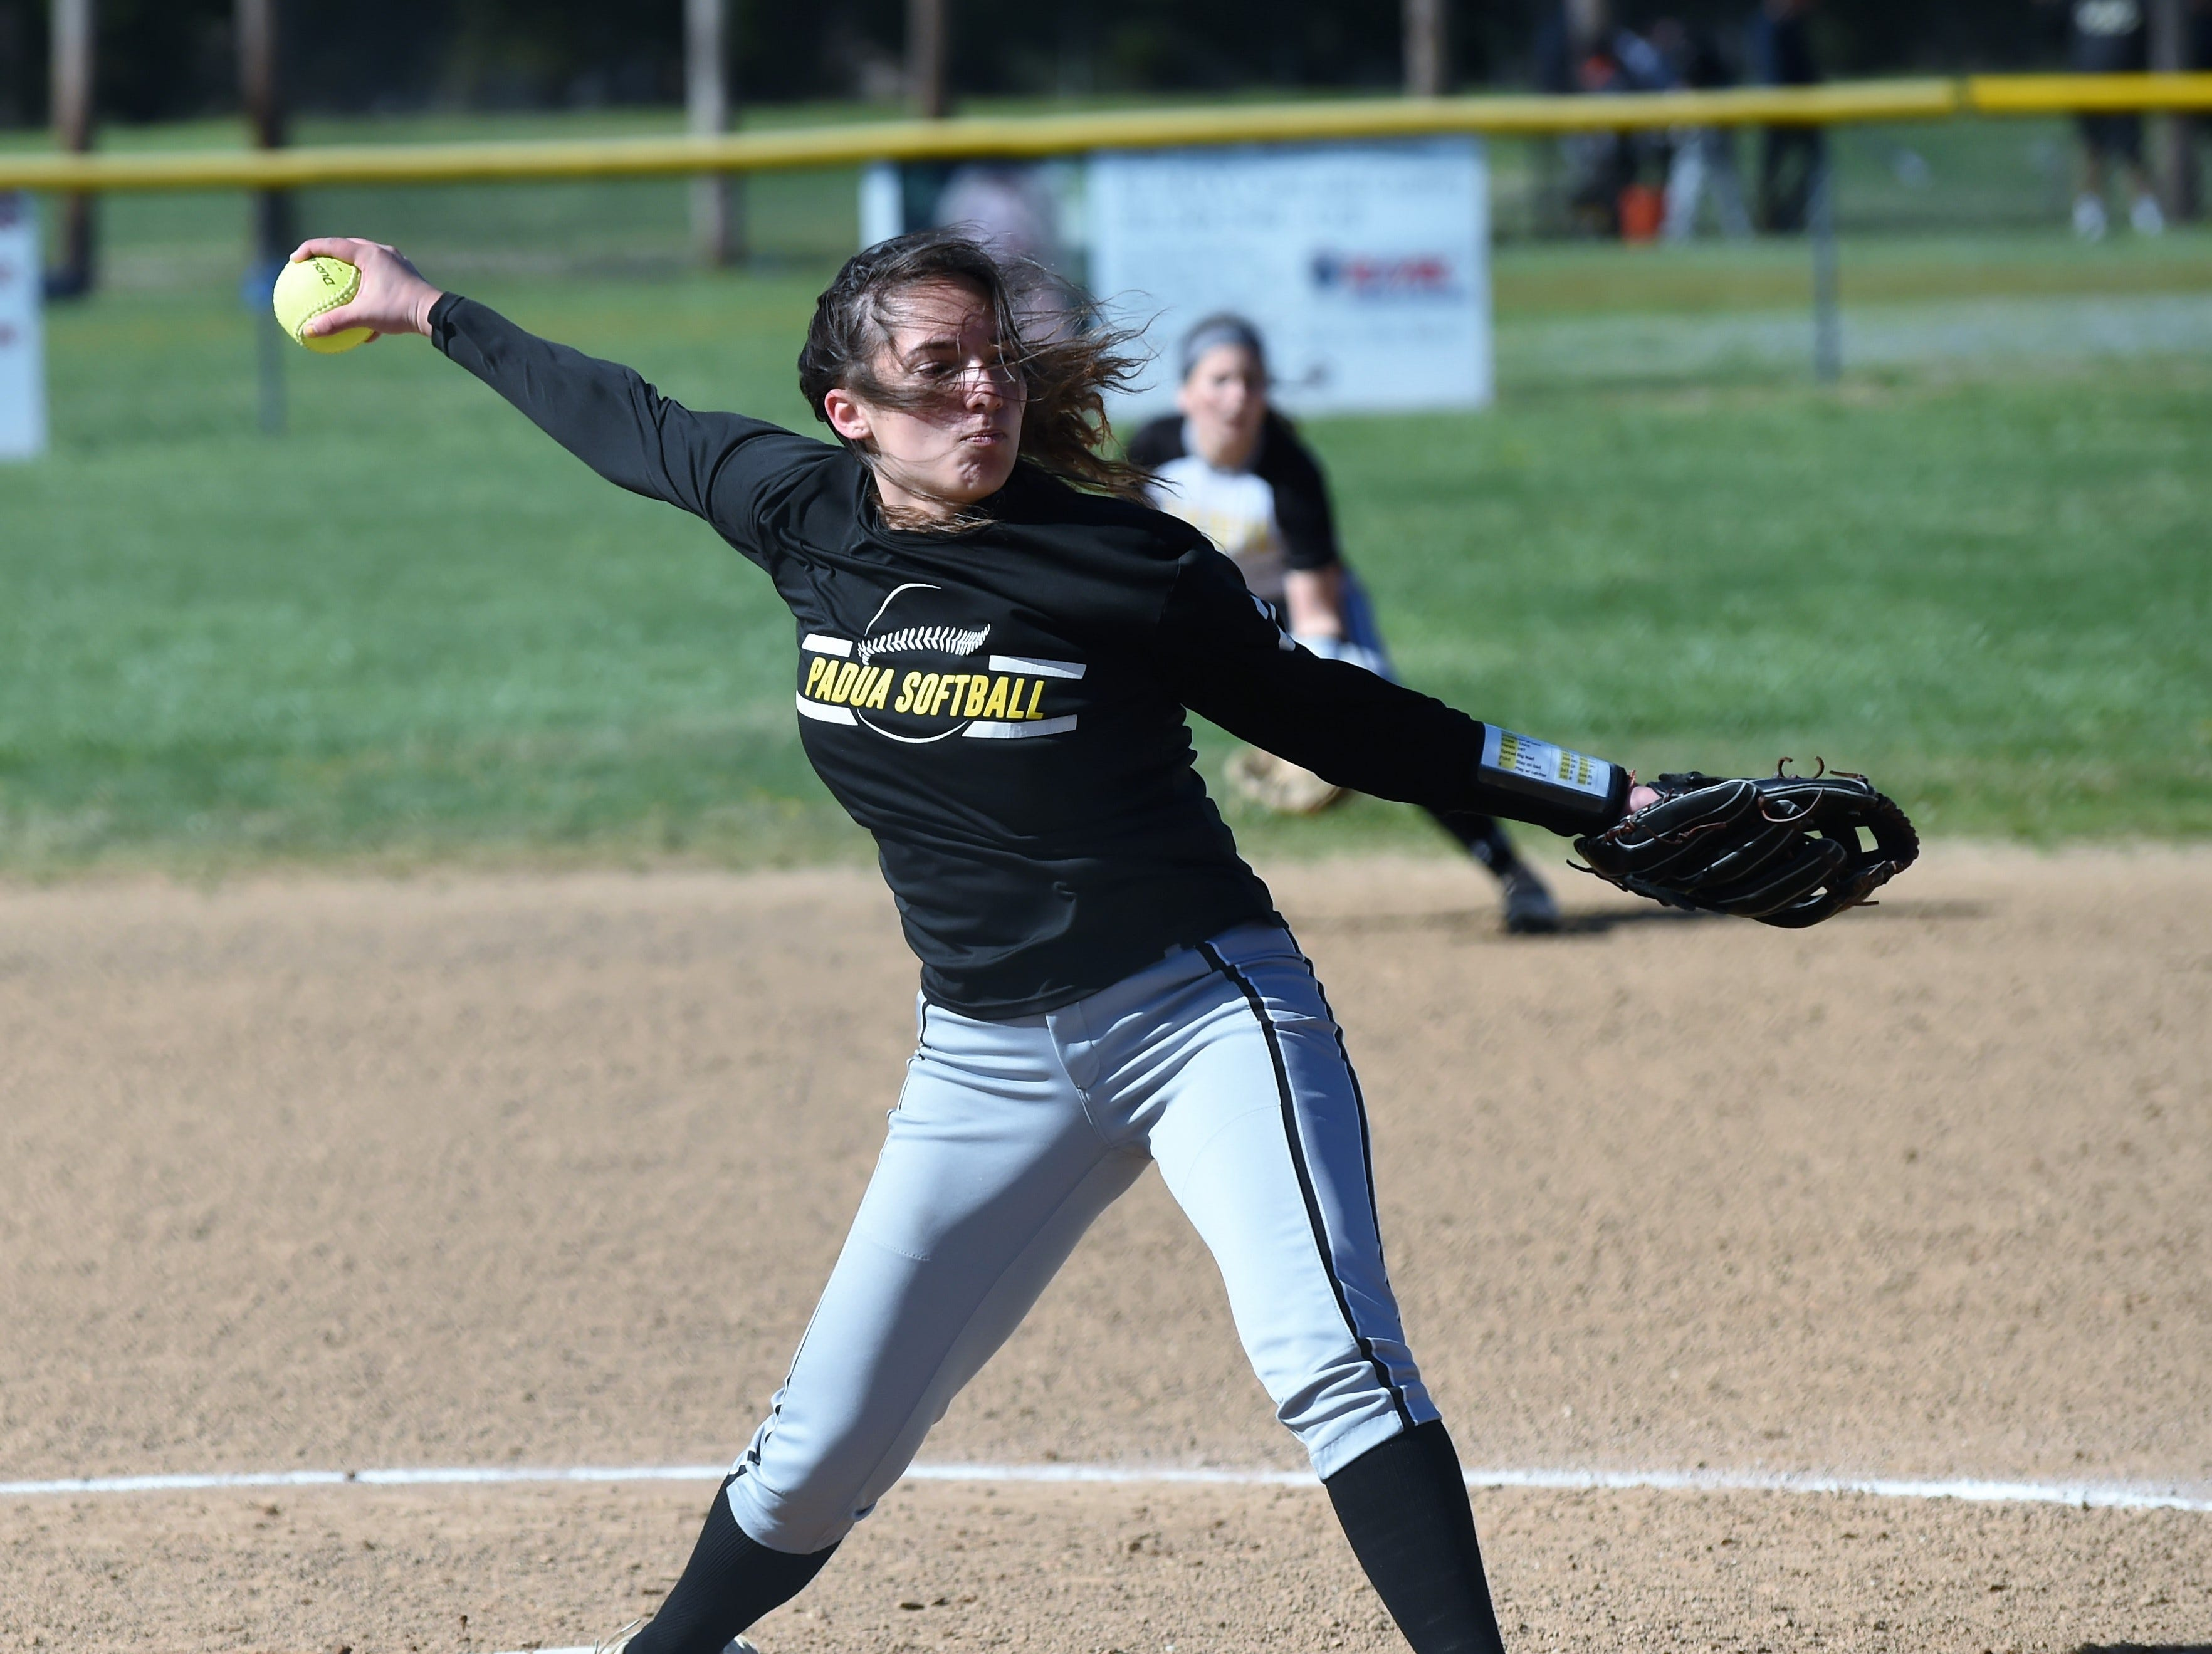 Padua pitcher Hailey Brooks pitches against Delmar on Monday, April 15, 2019. The Wildcats defeated Padua Academy, 6-2.